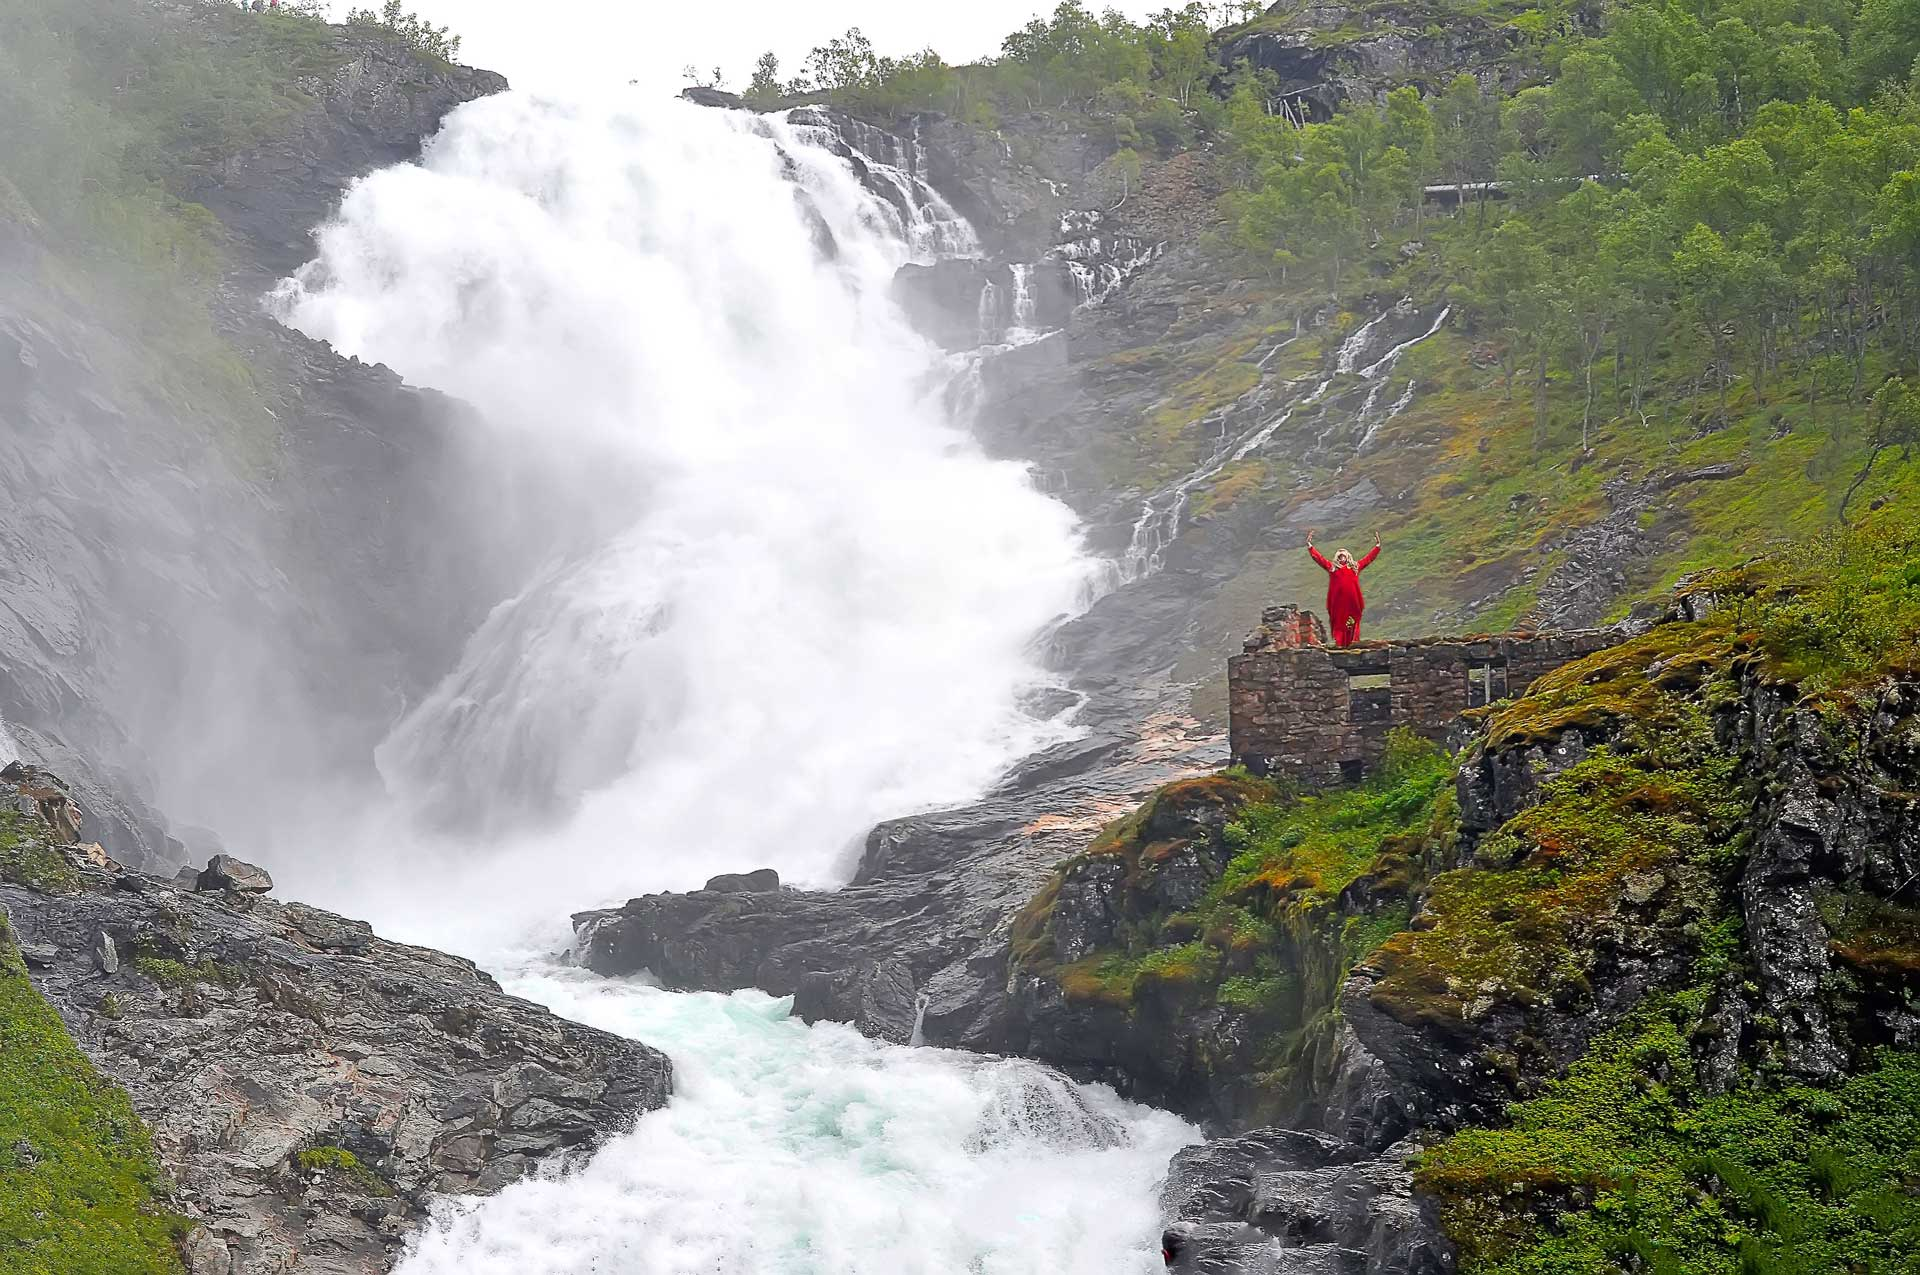 Huldra at the Kjossfossen waterfall, Norway